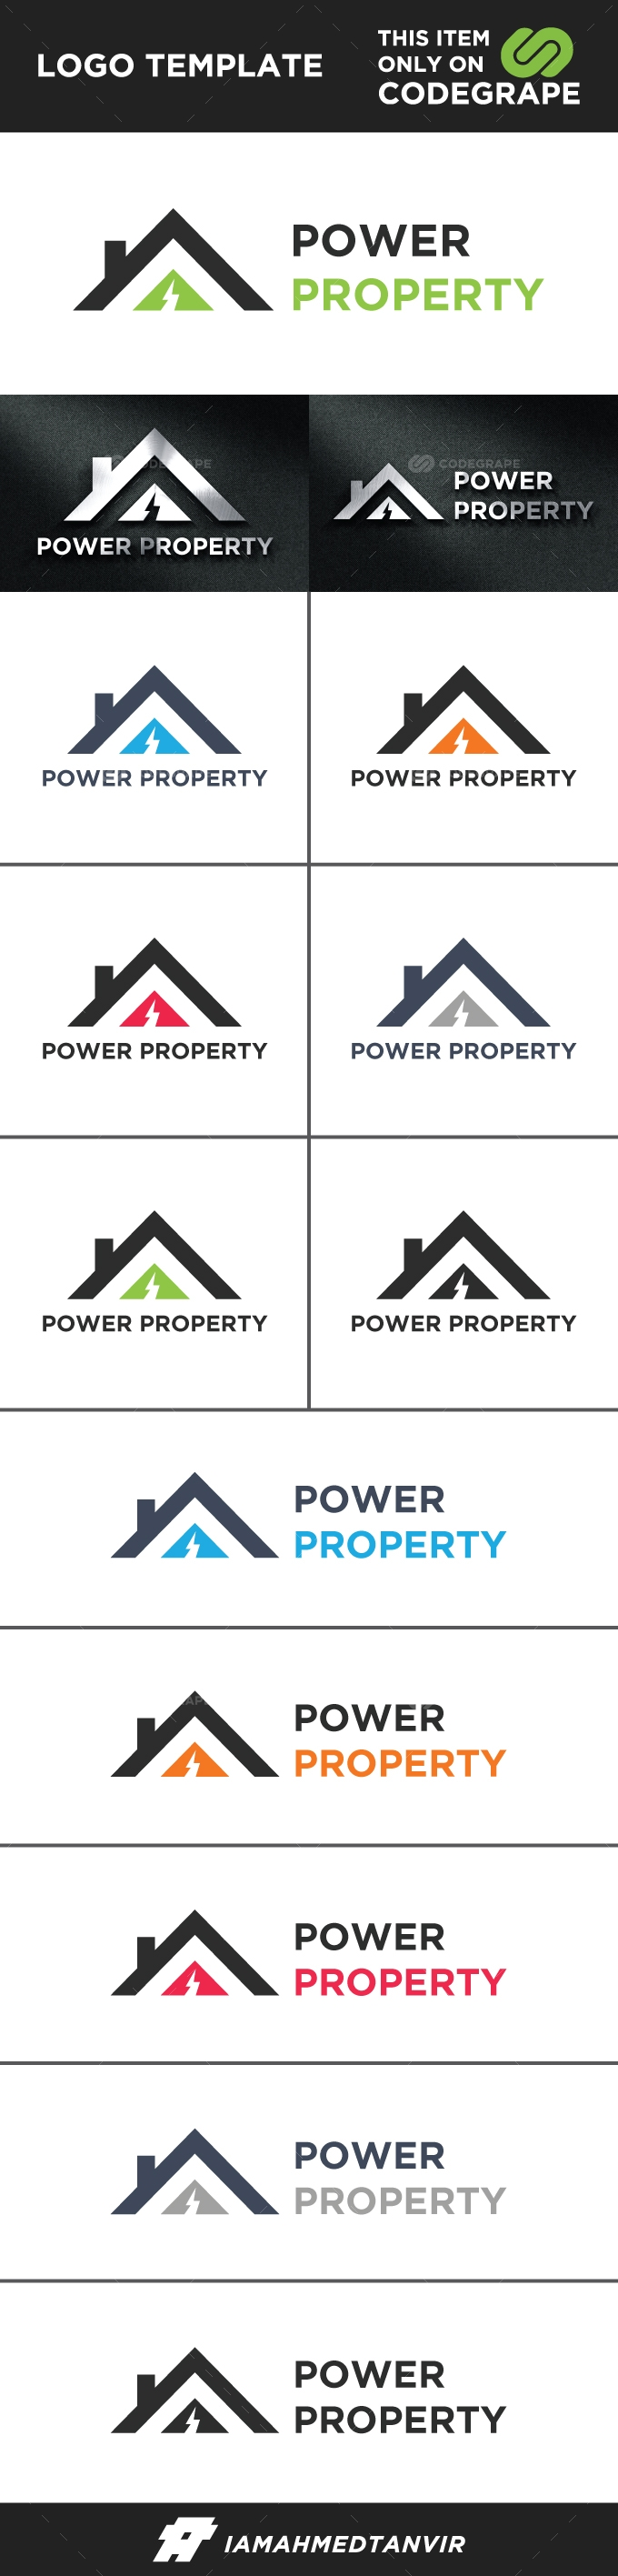 Power Property Logo